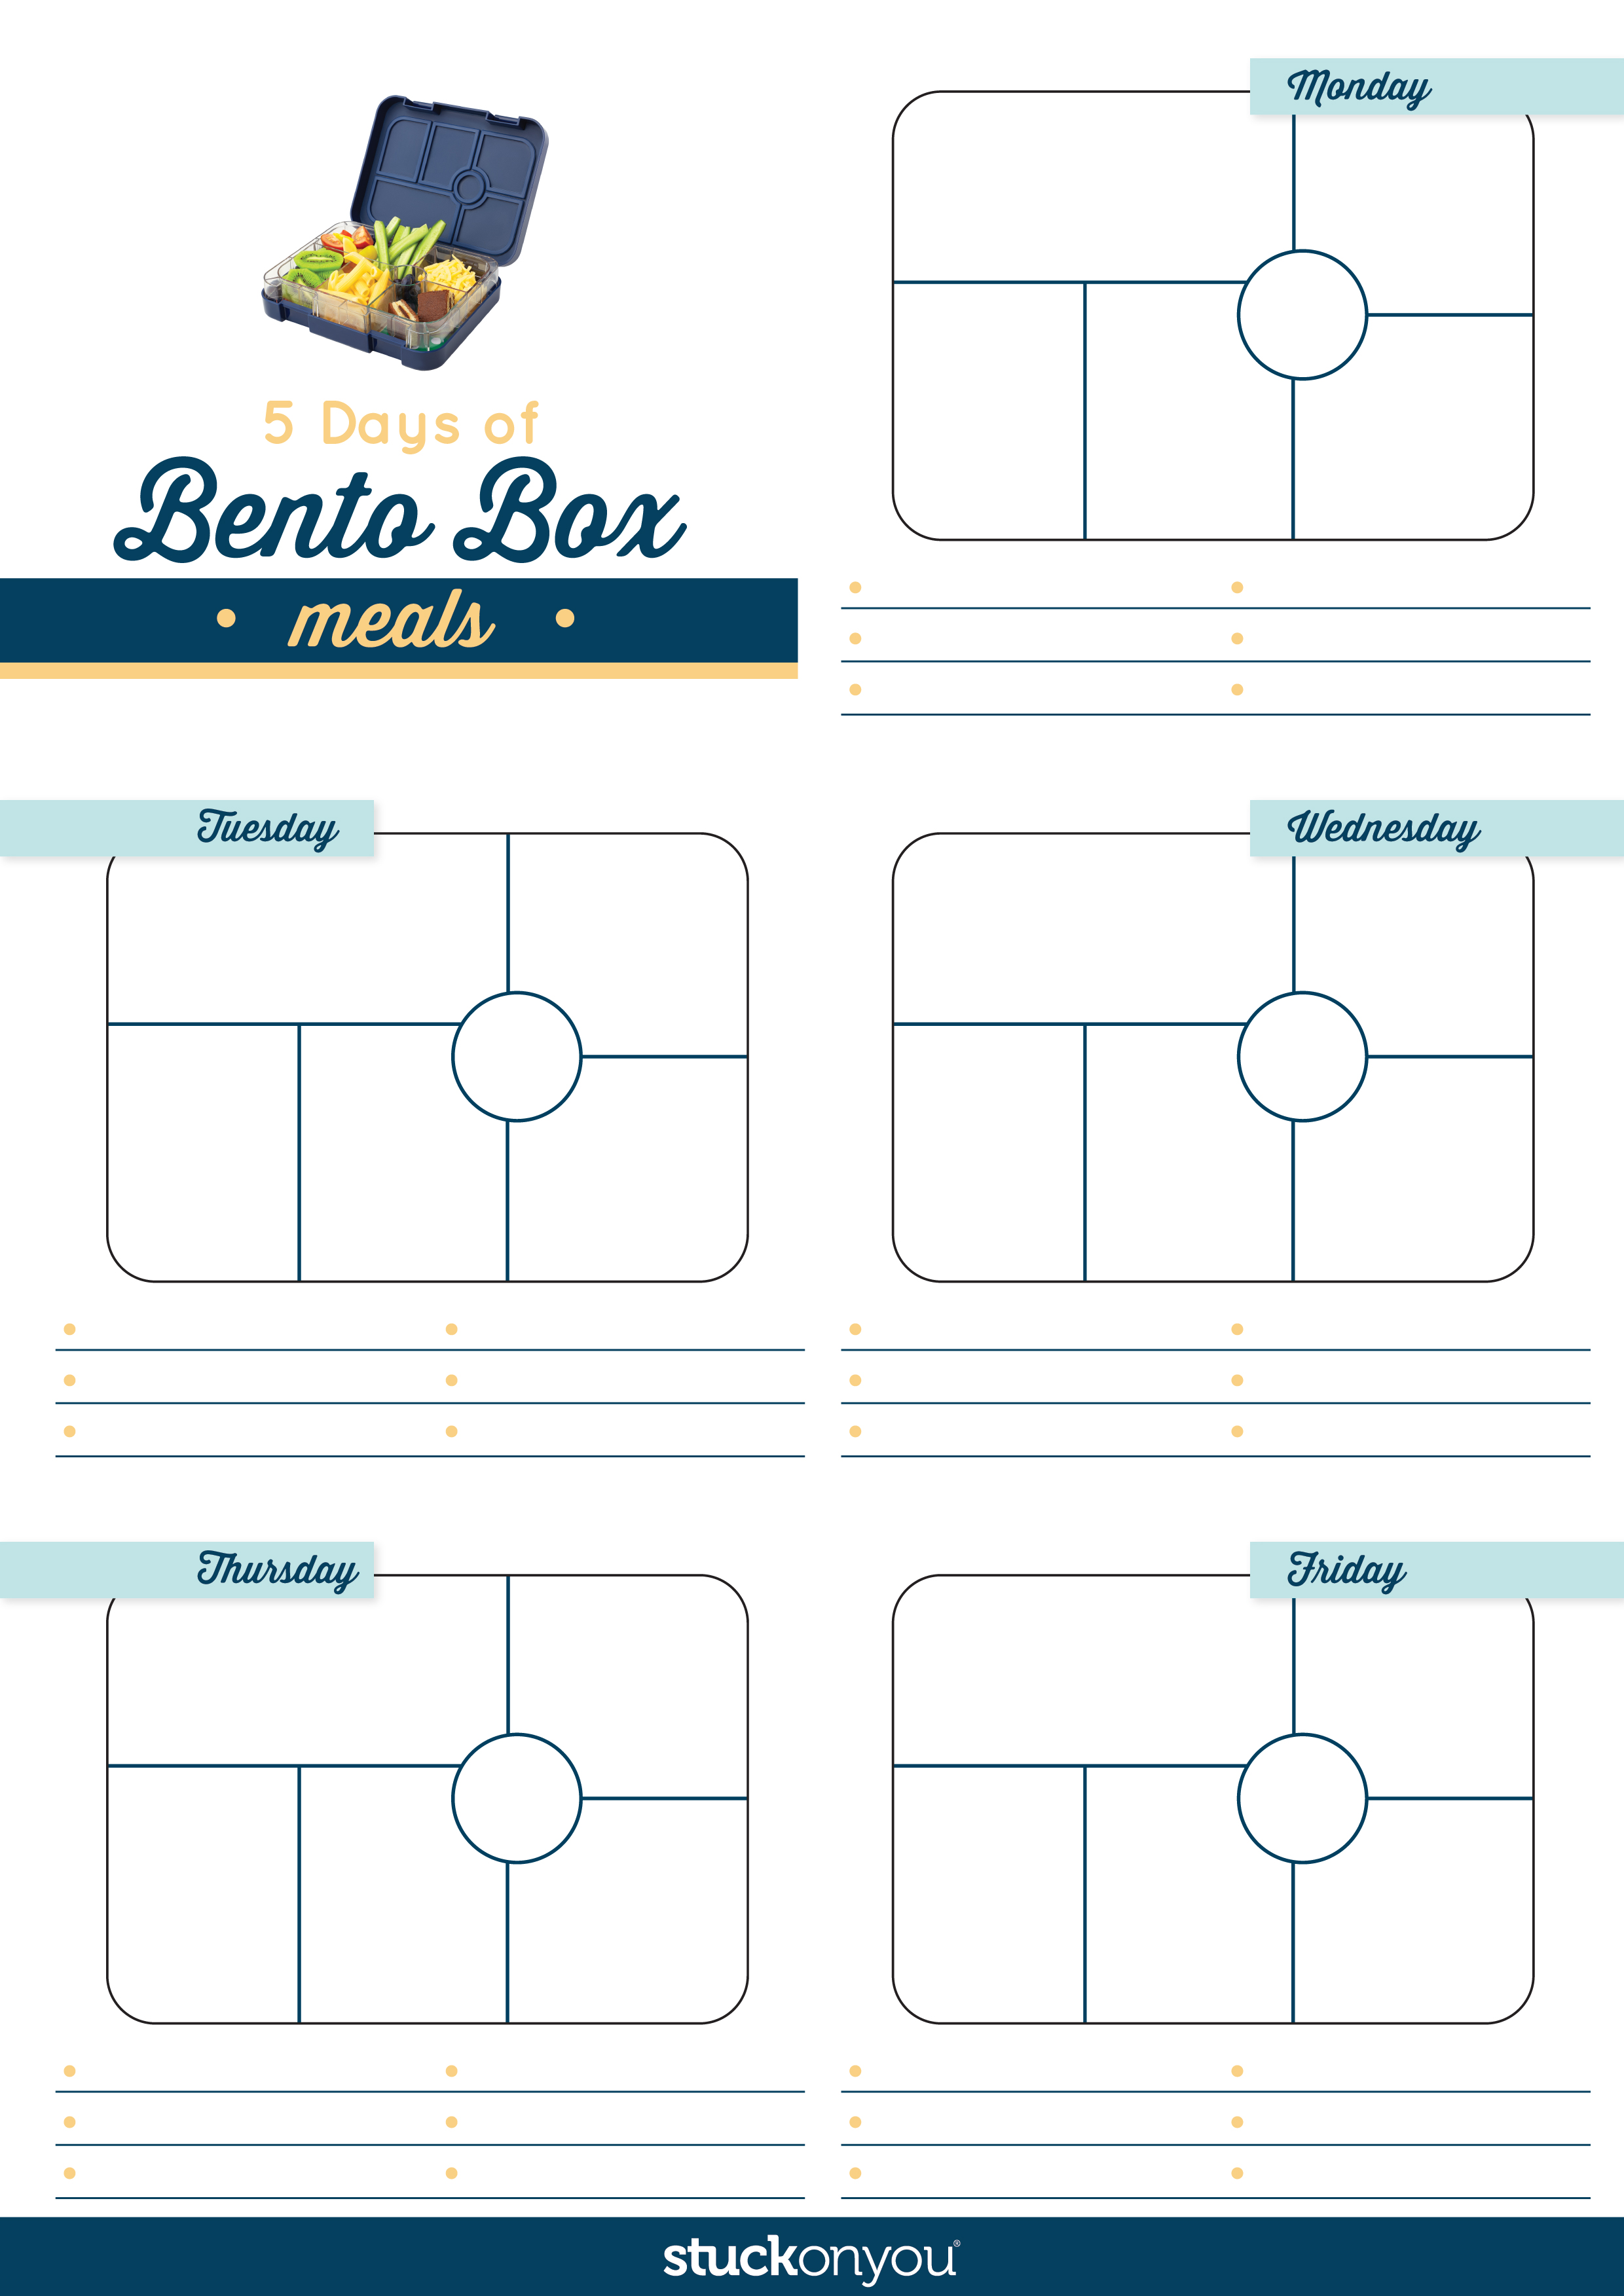 Our Free Printable Bento Box Meal Planner